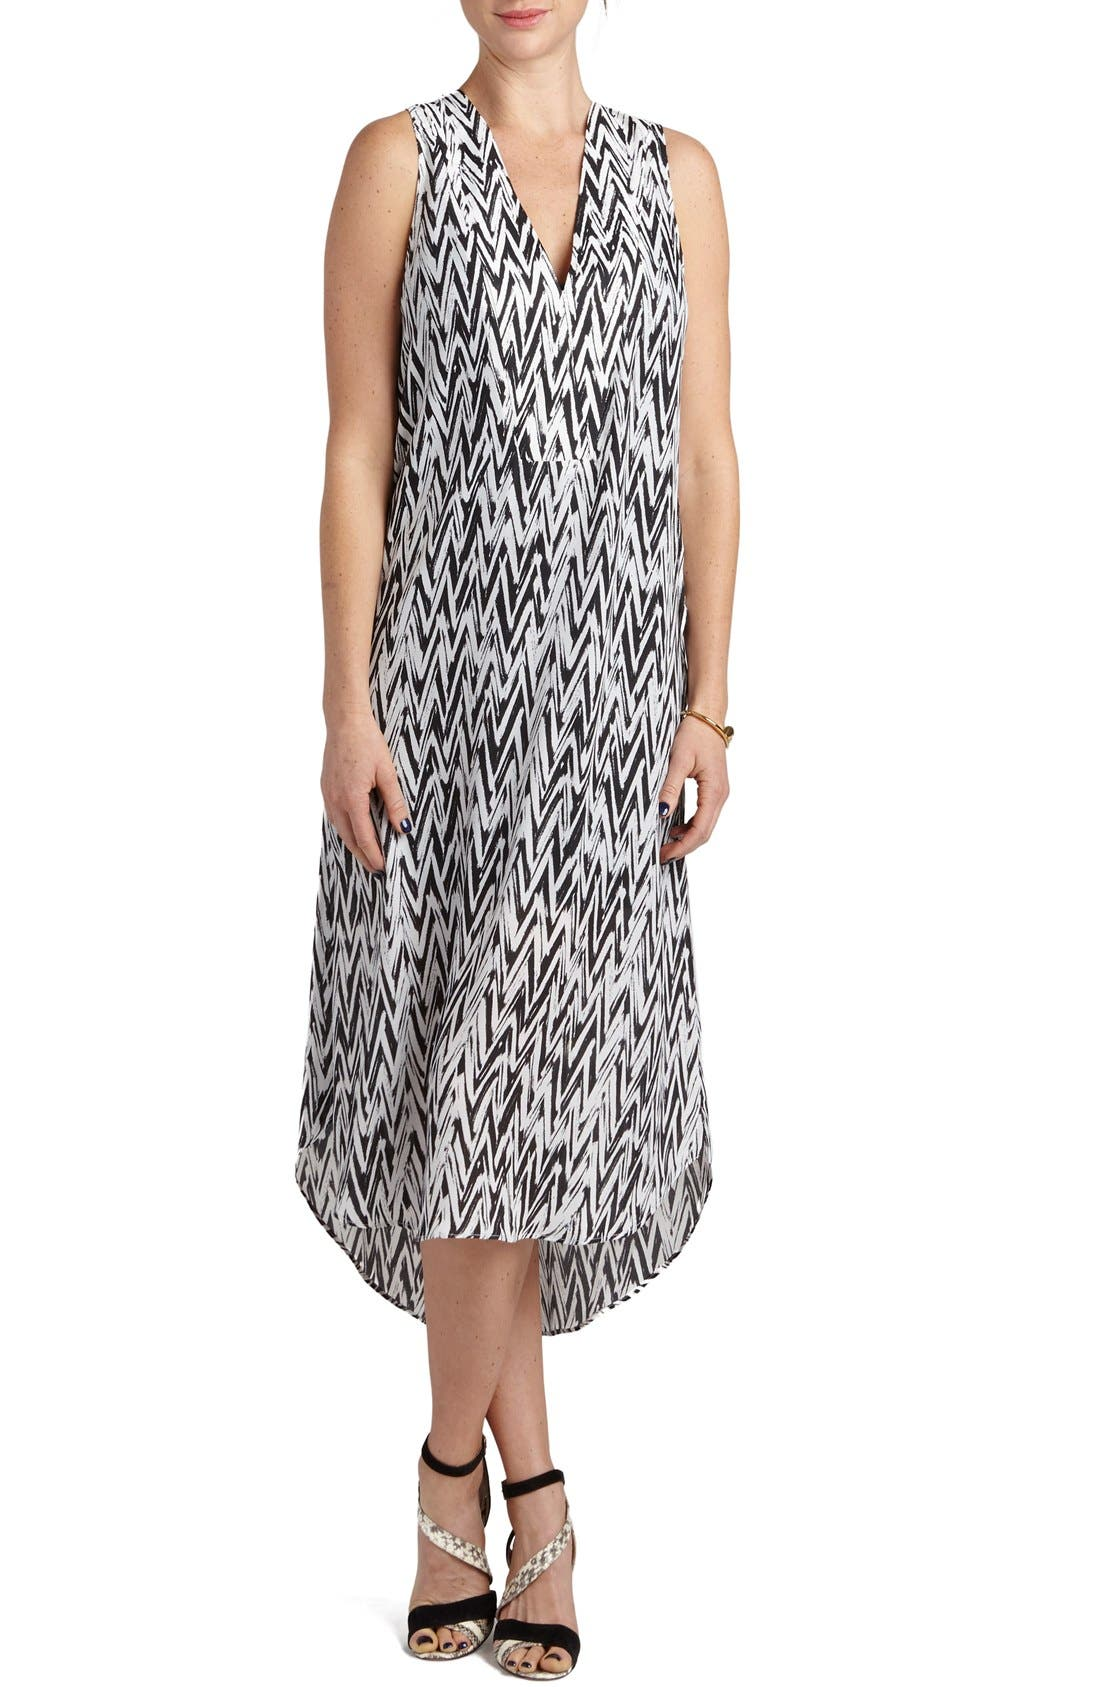 Loyal Hana 'January' Print Maternity/Nursing High/Low Dress